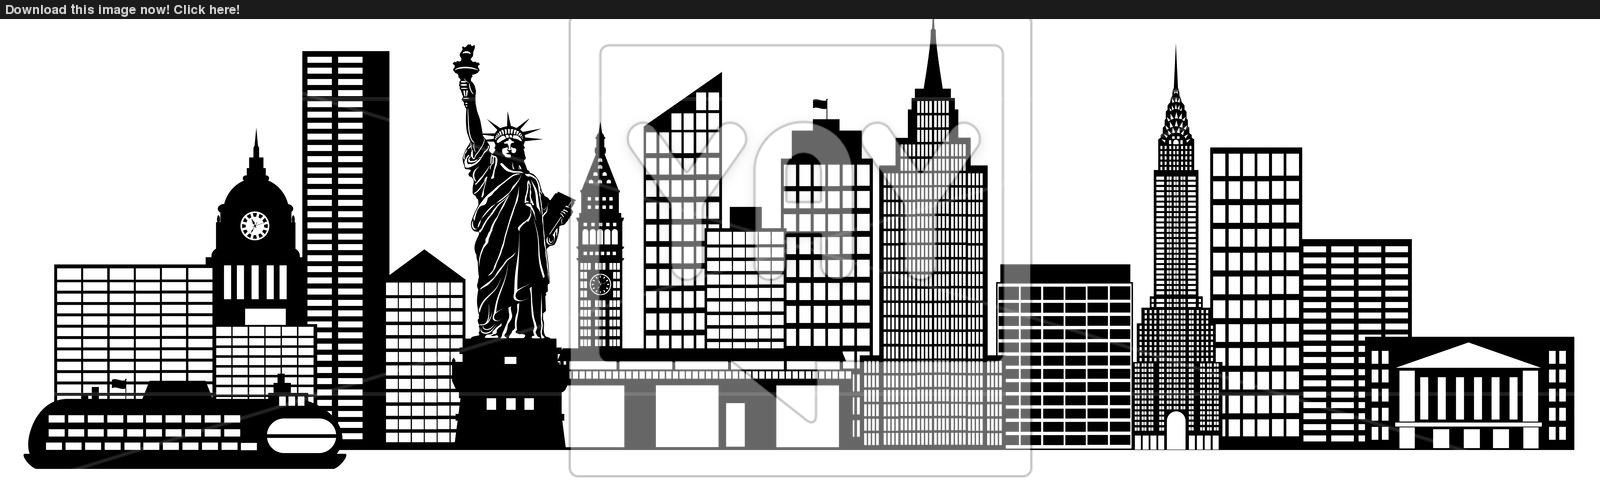 Clip Art New York City.